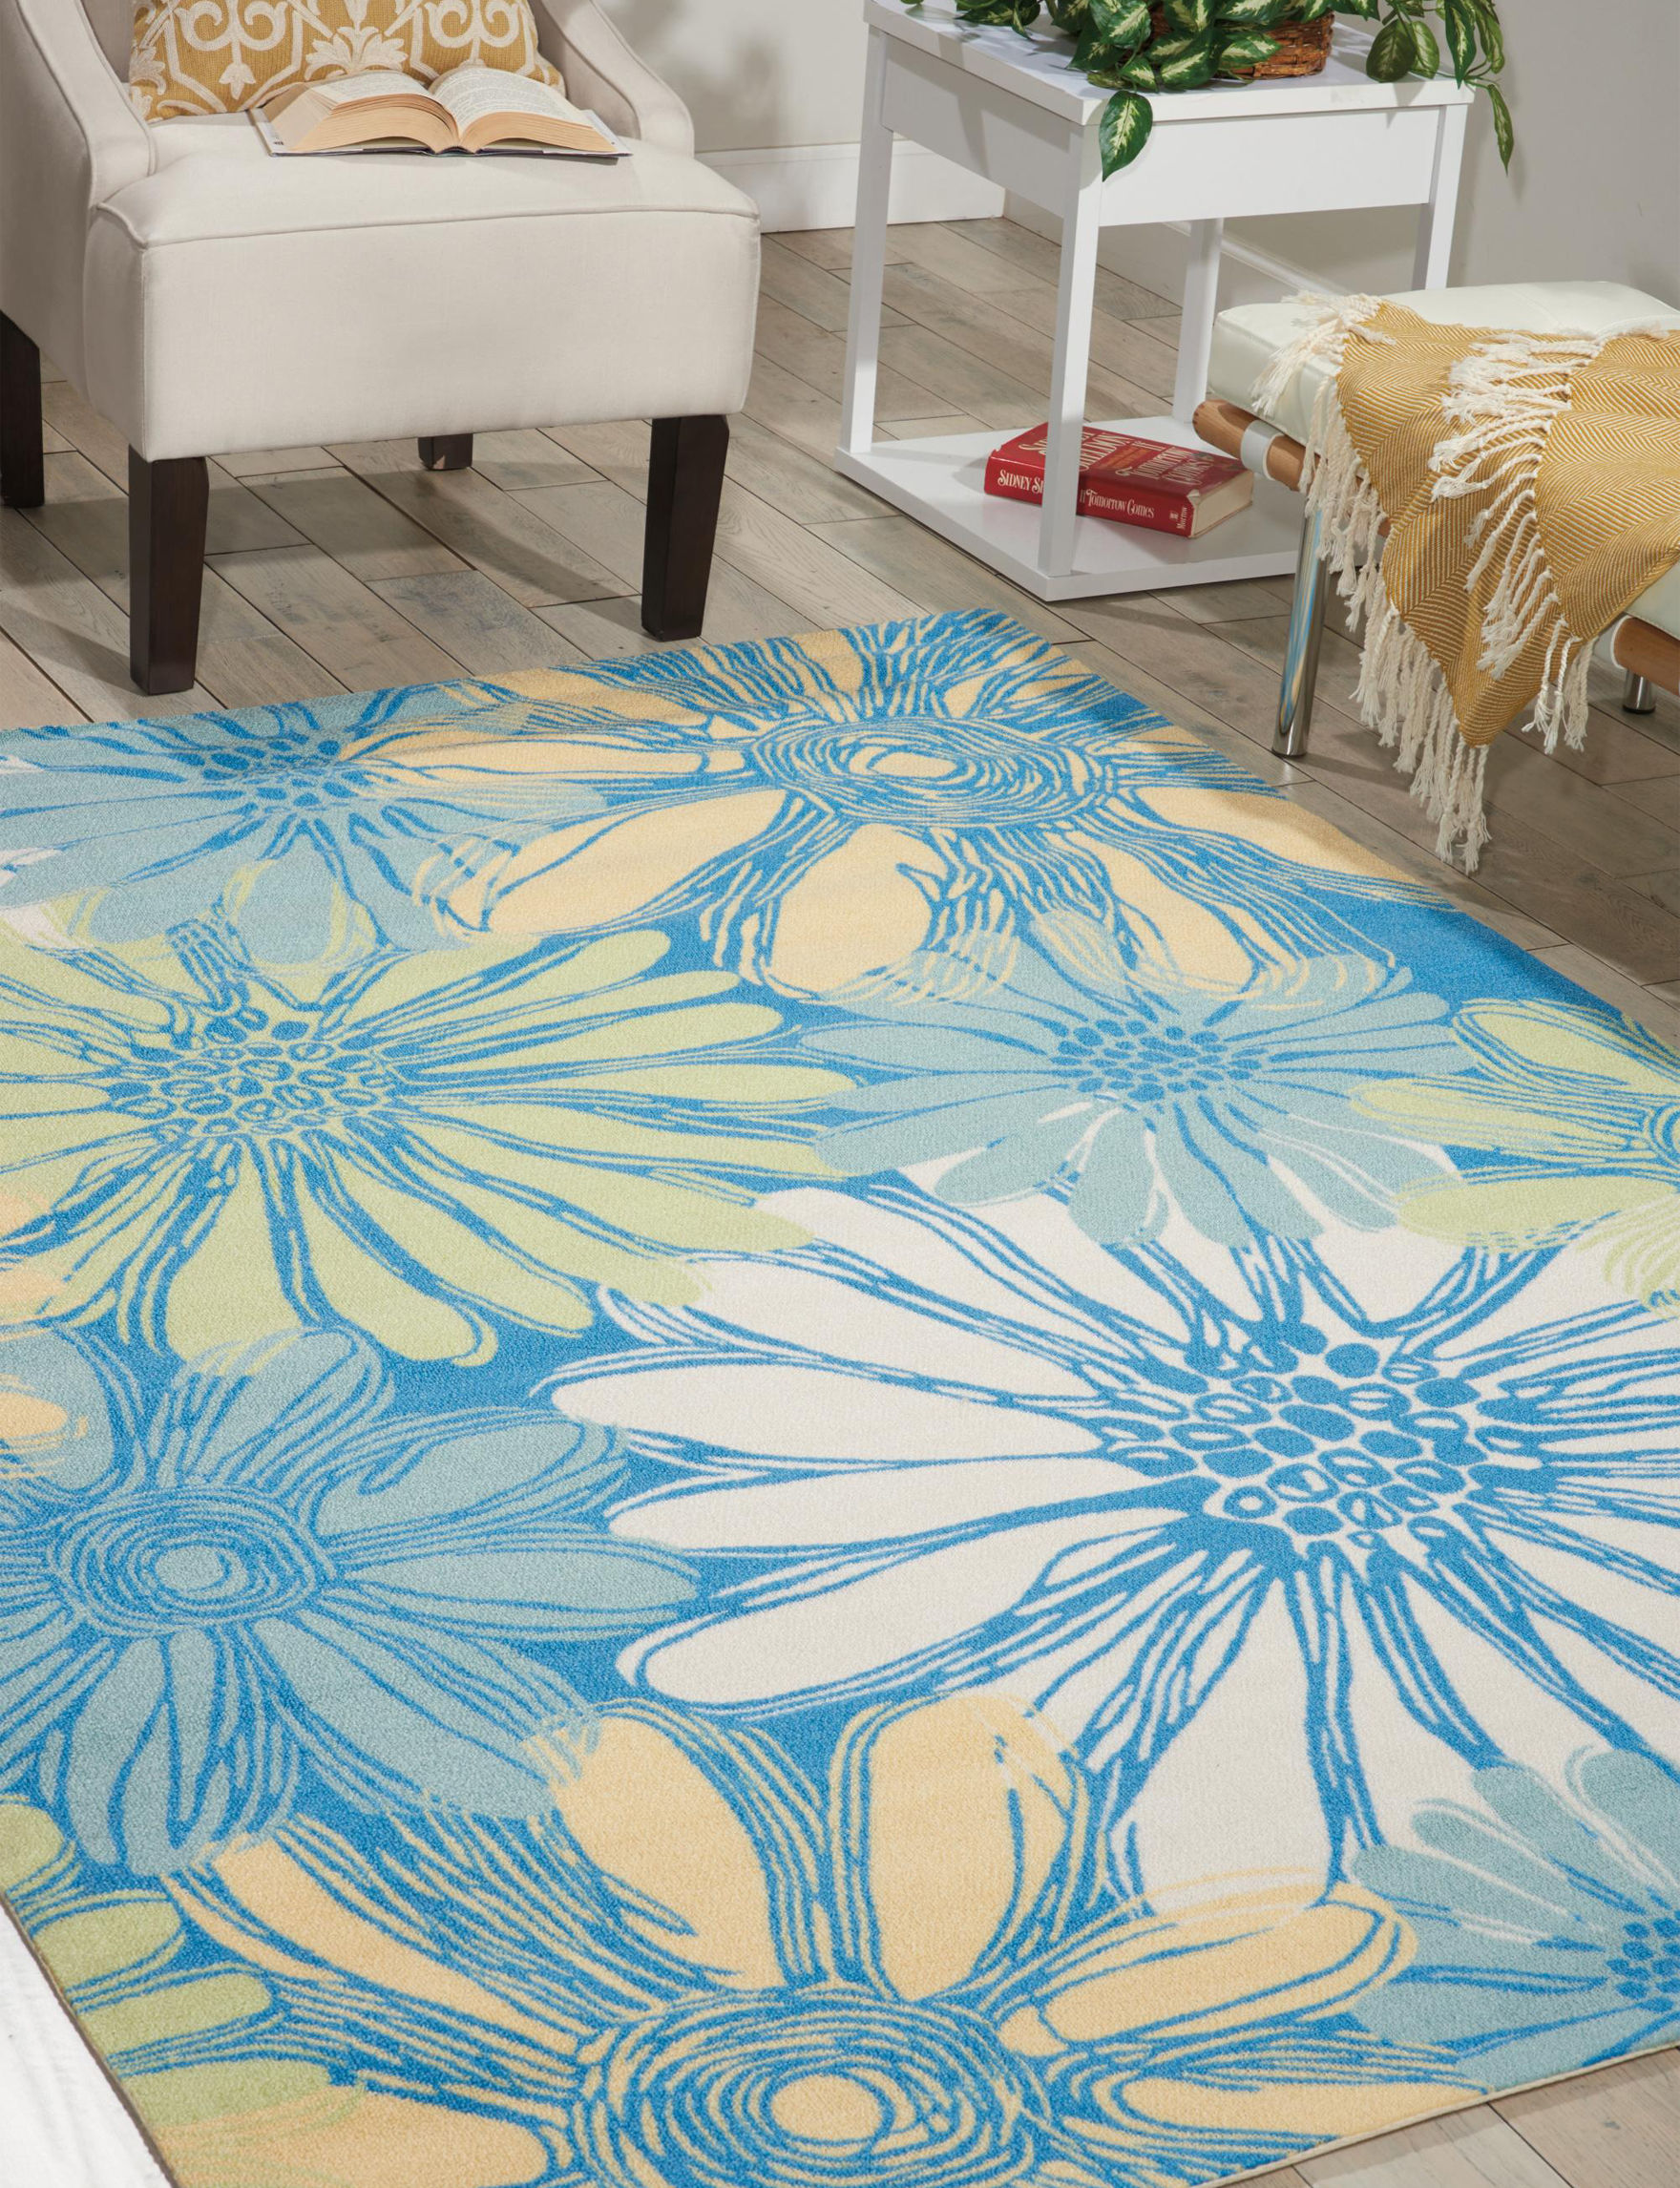 Nourison Blue Accent Rugs Area Rugs Outdoor Rugs & Doormats Runners Outdoor Decor Rugs